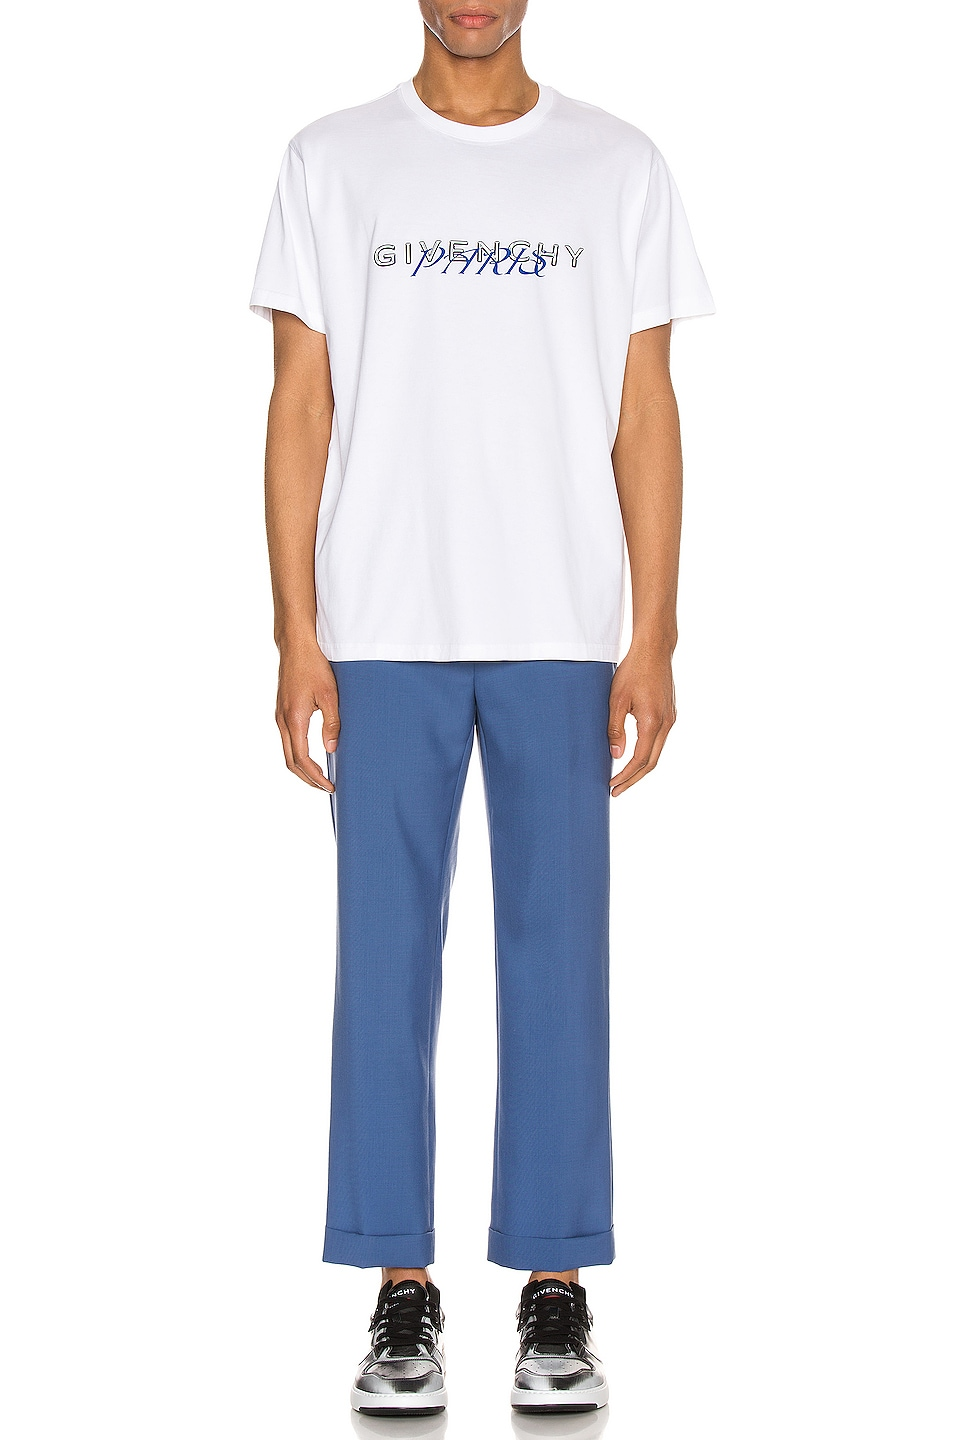 Image 4 of Givenchy Graphic Tee in White